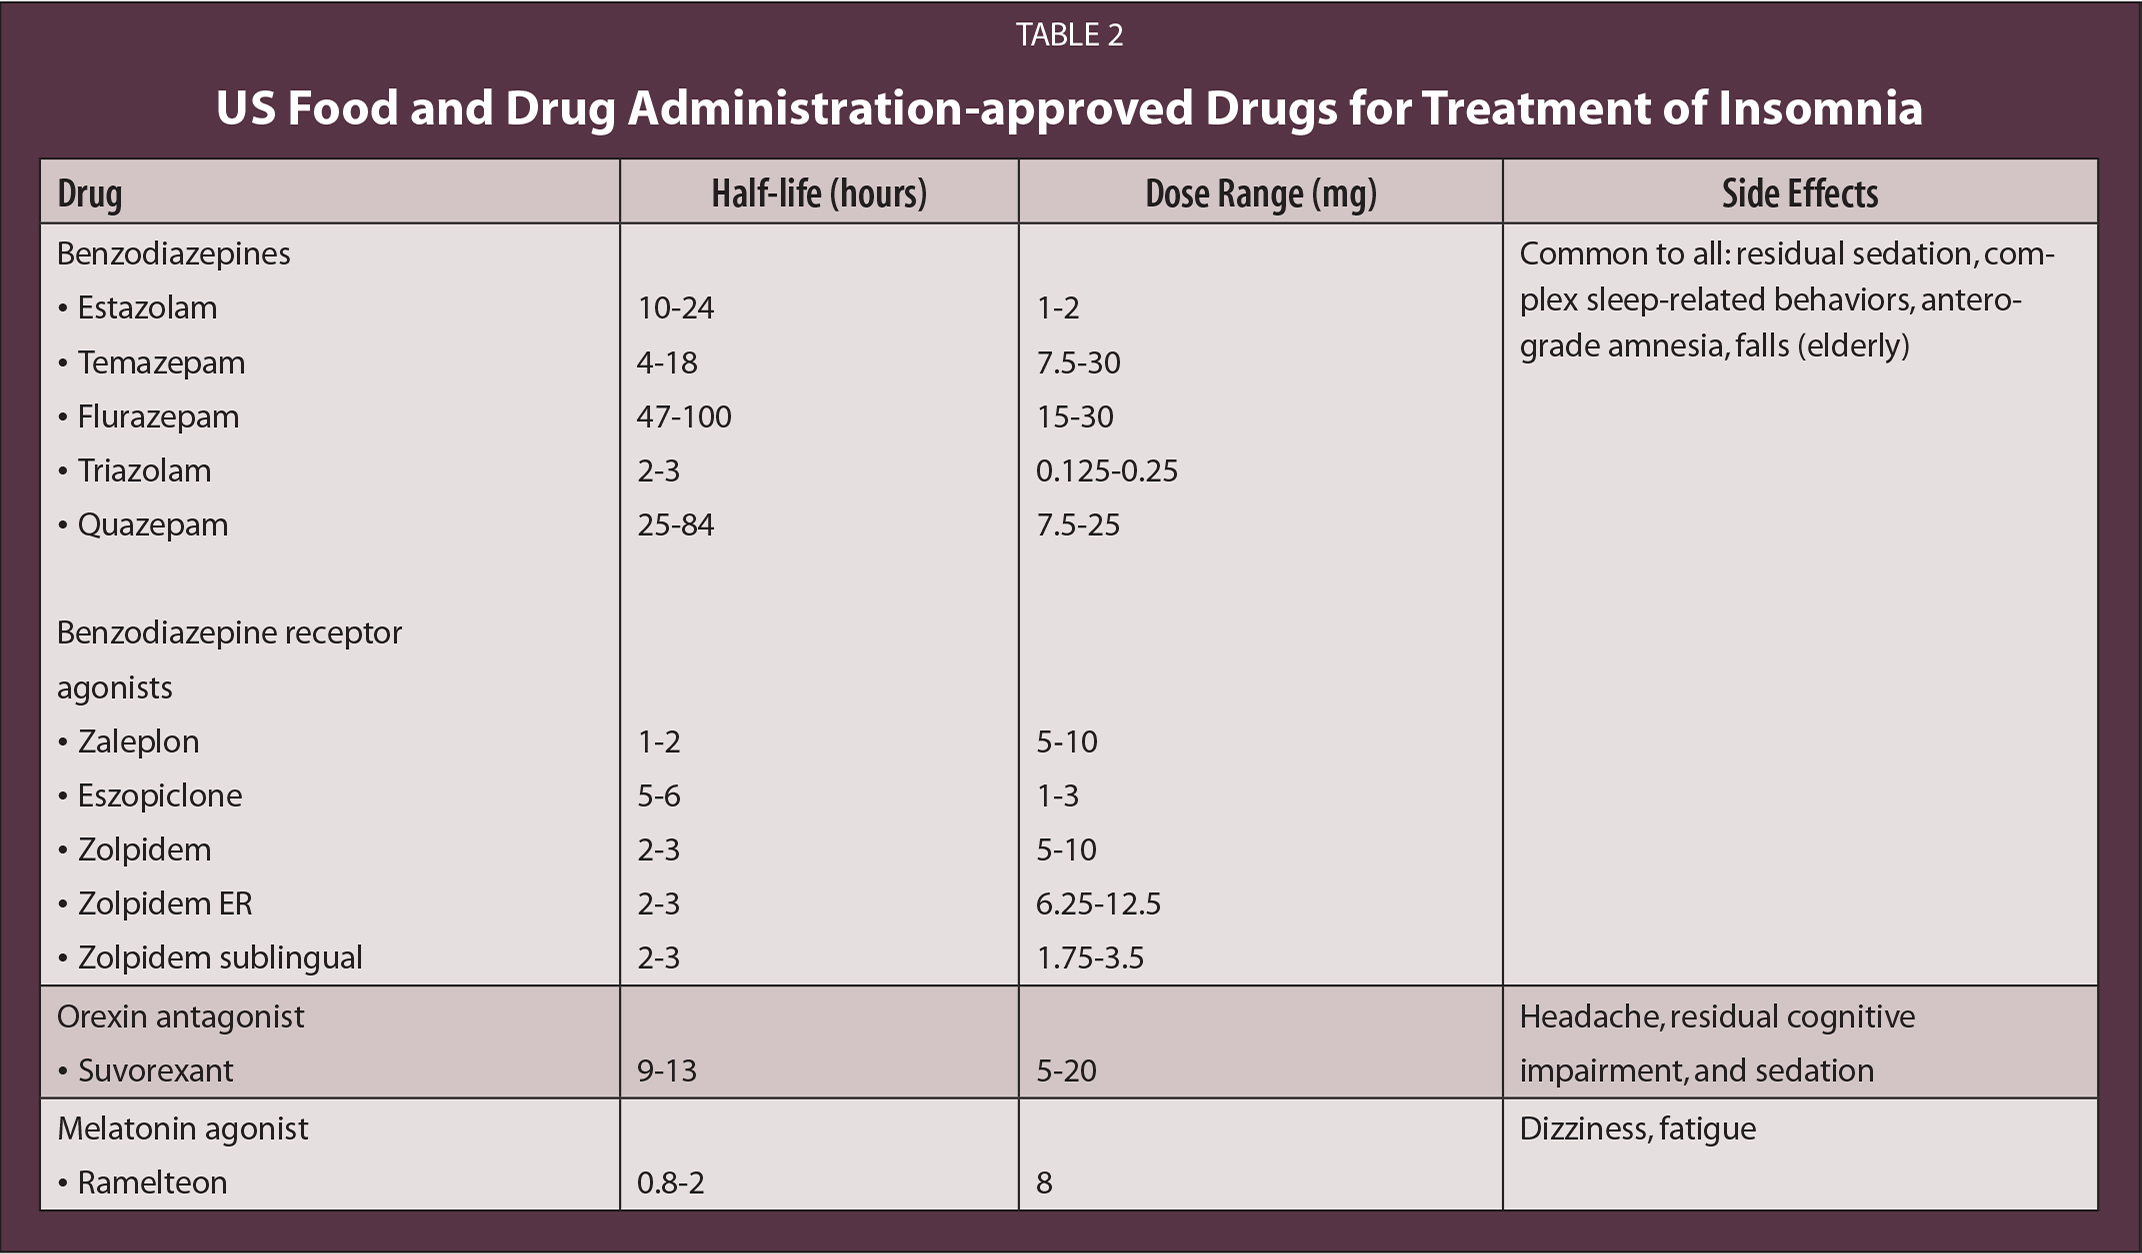 US Food and Drug Administration-approved Drugs for Treatment of Insomnia